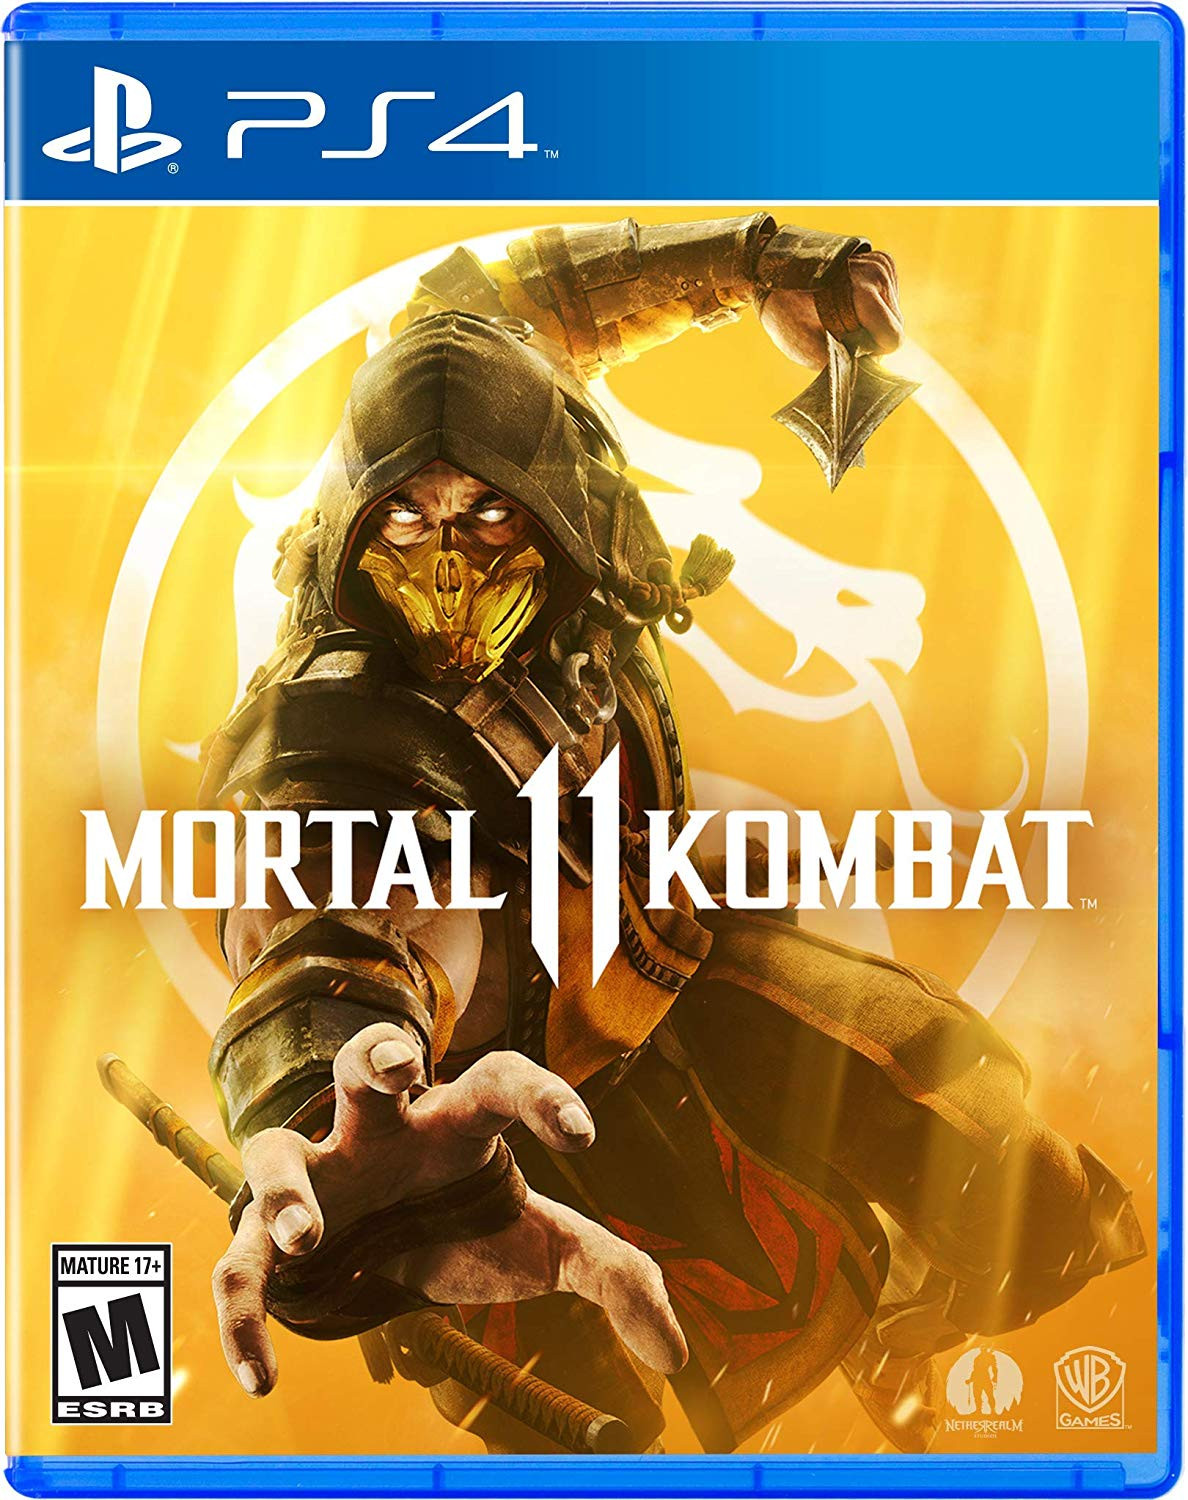 Mortal Kombat 11 | PS4 Principal | 40GB